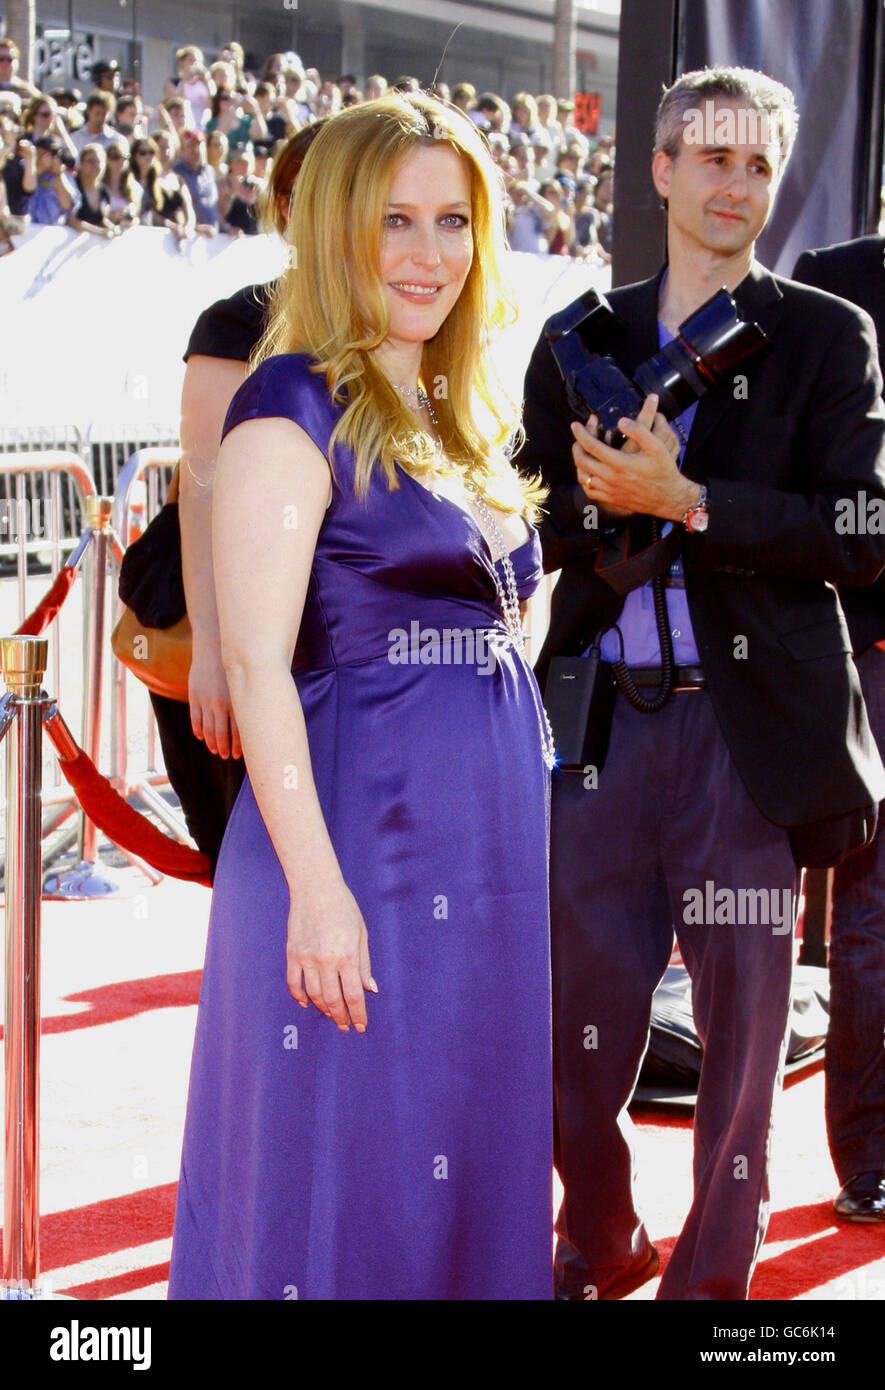 Gillian Anderson at the Los Angeles Premiere of 'The X-Files: I Want To Believe' held at the Grauman's - Stock Image